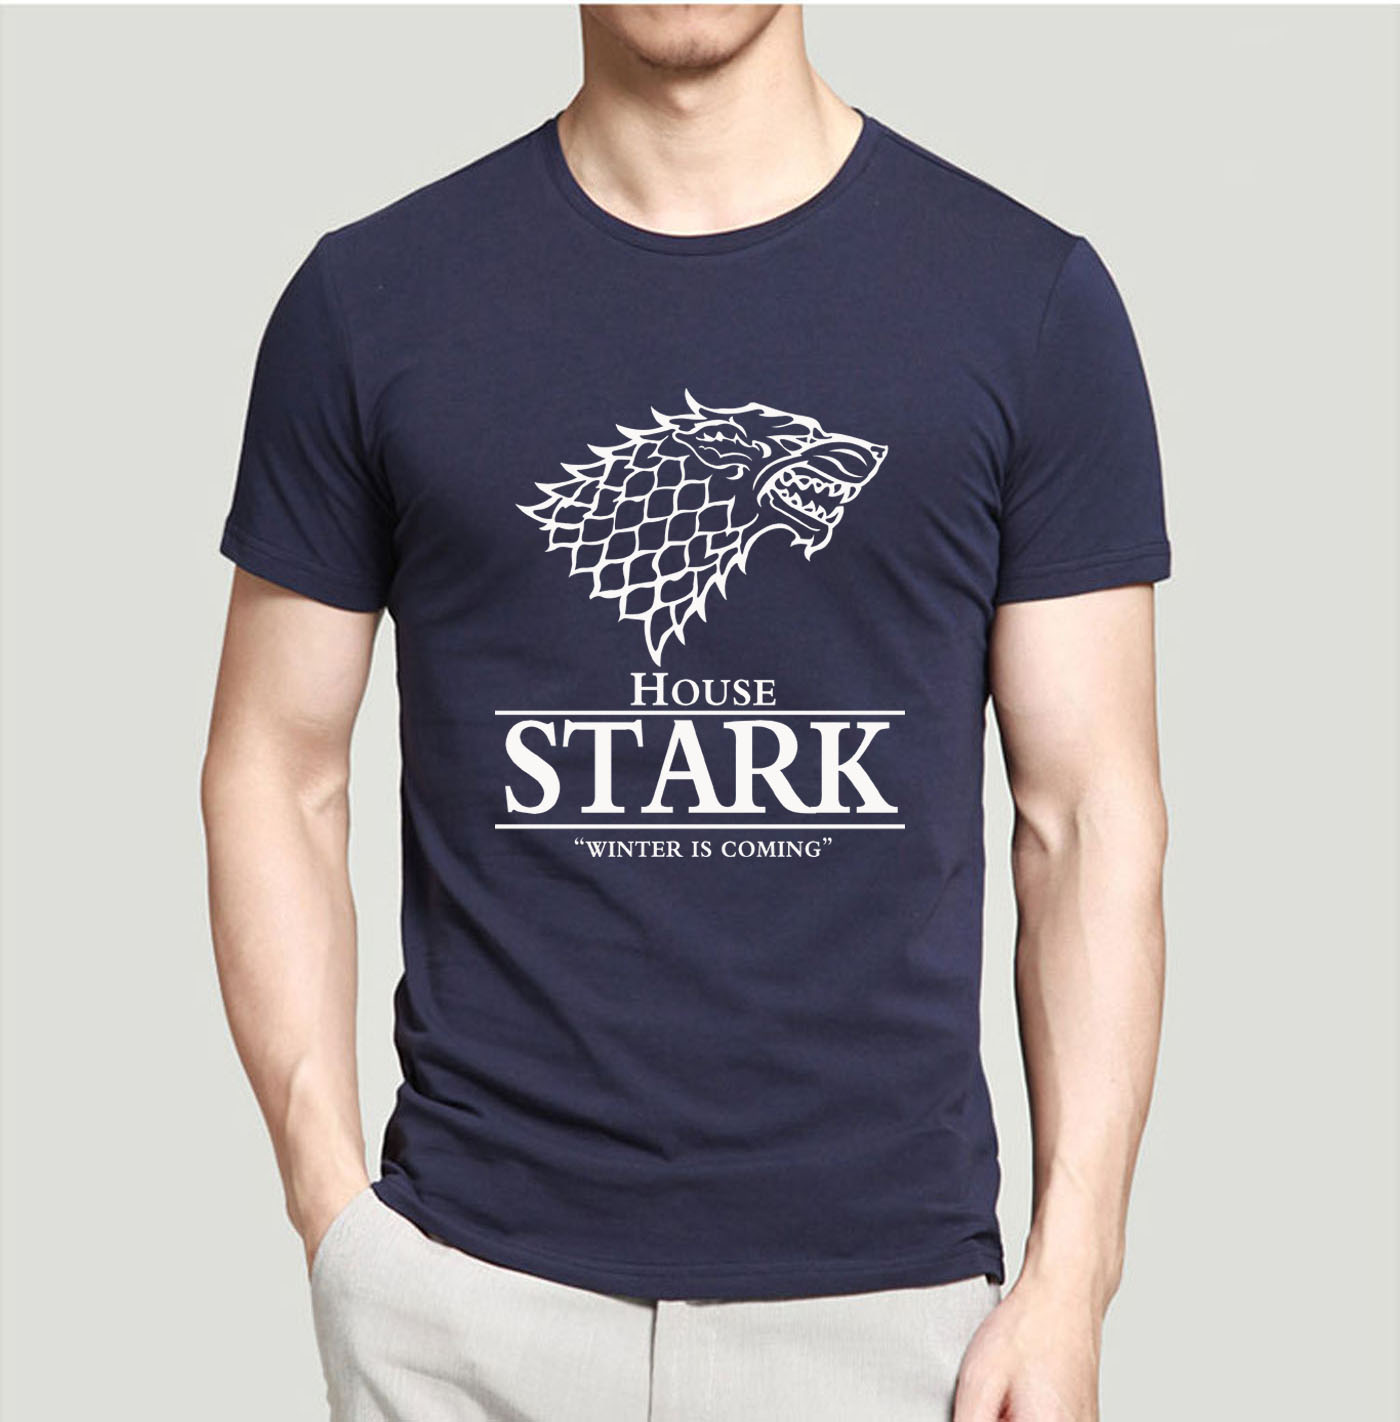 hot sale Game of Thrones Men   T     Shirts   Summer Casual 100% Cotton House Stark Mens   Shirt   Winter Is Coming Man Short Sleeve Tees